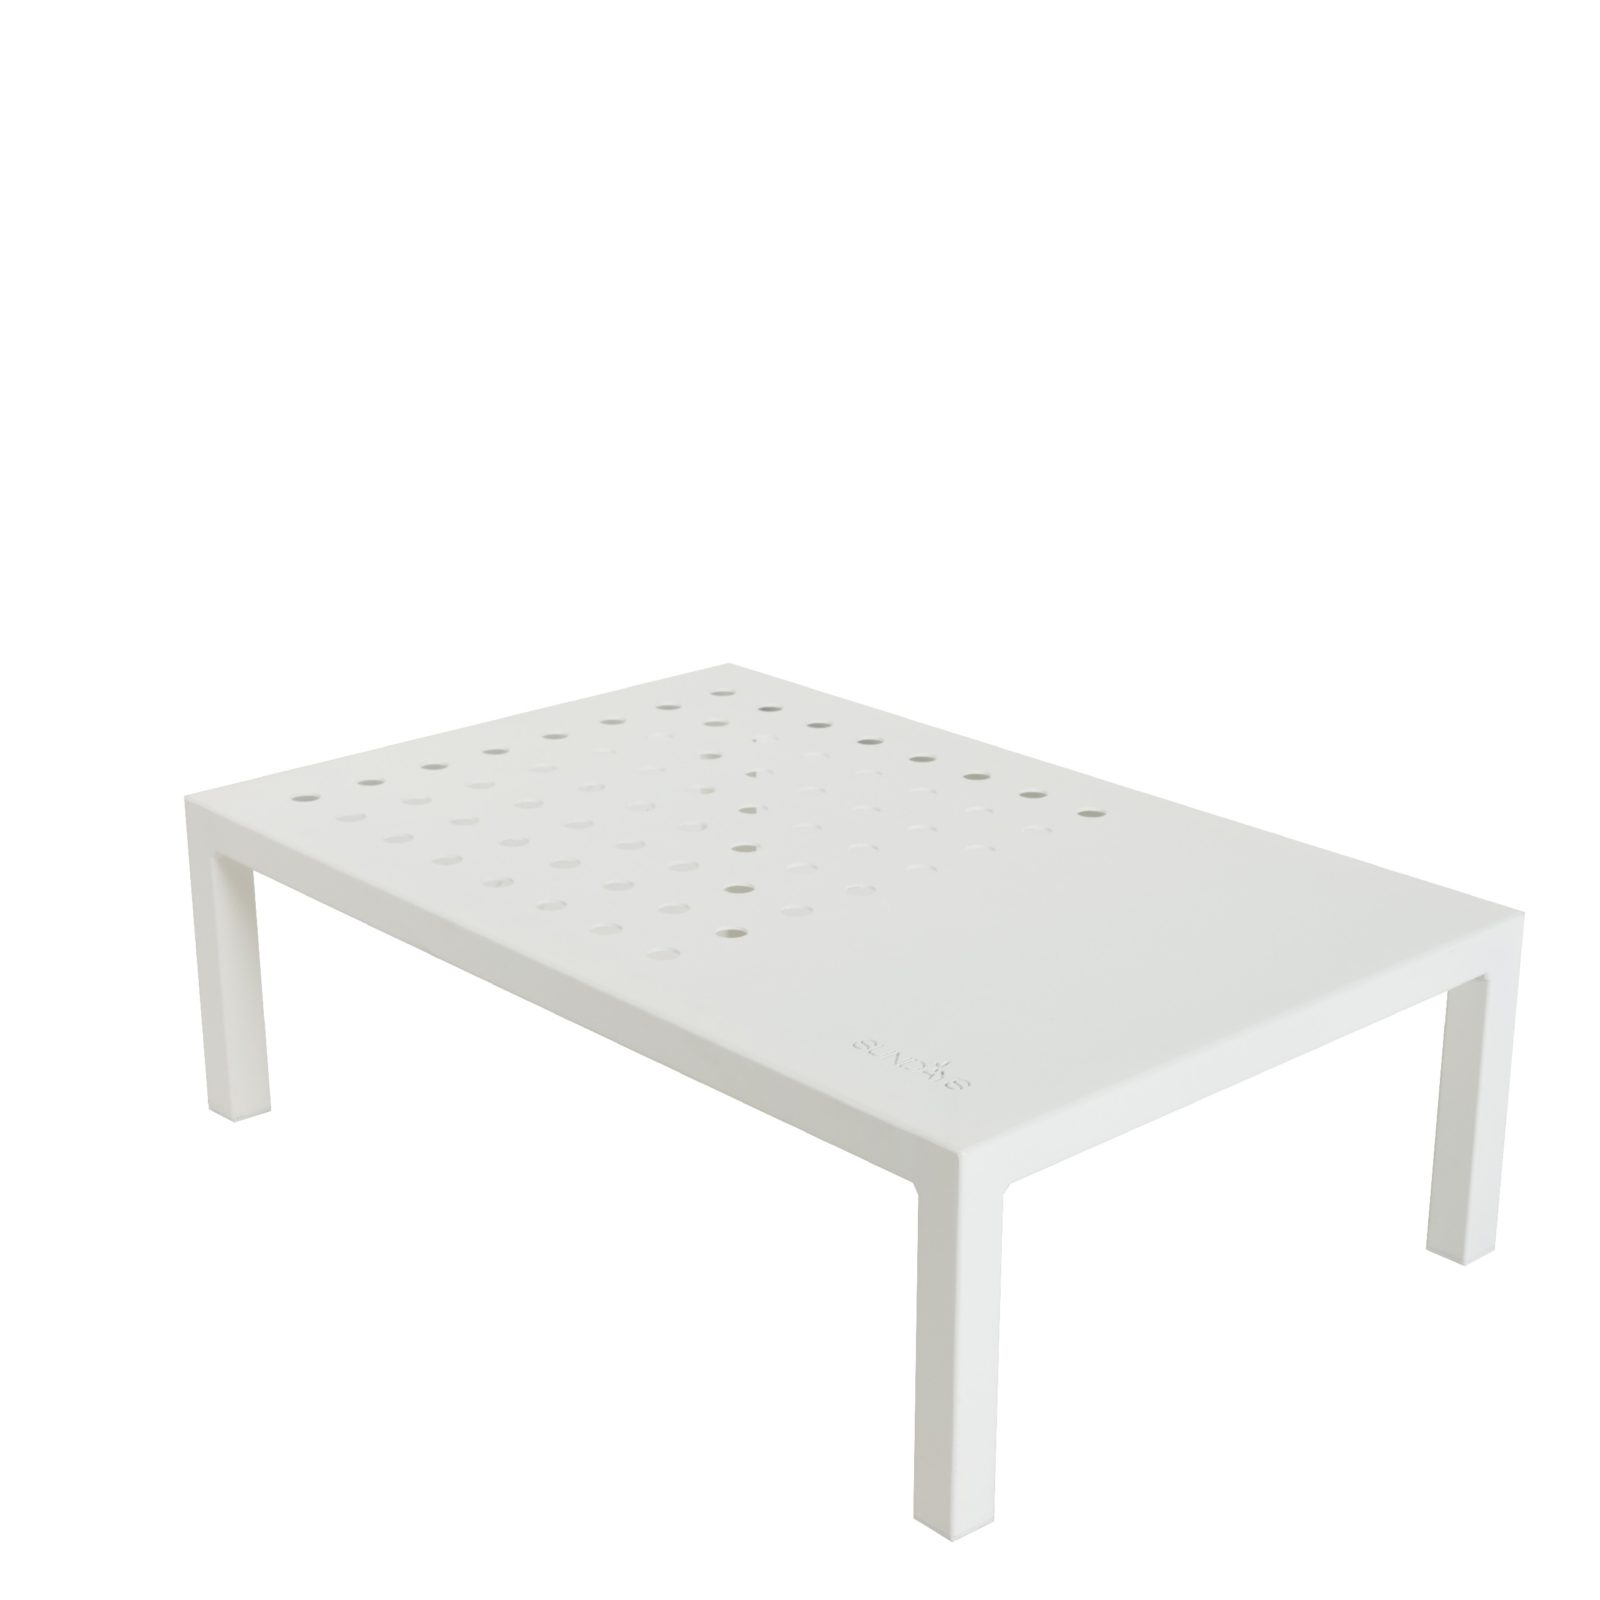 Sundays loungetable lav 100406 fonn alt